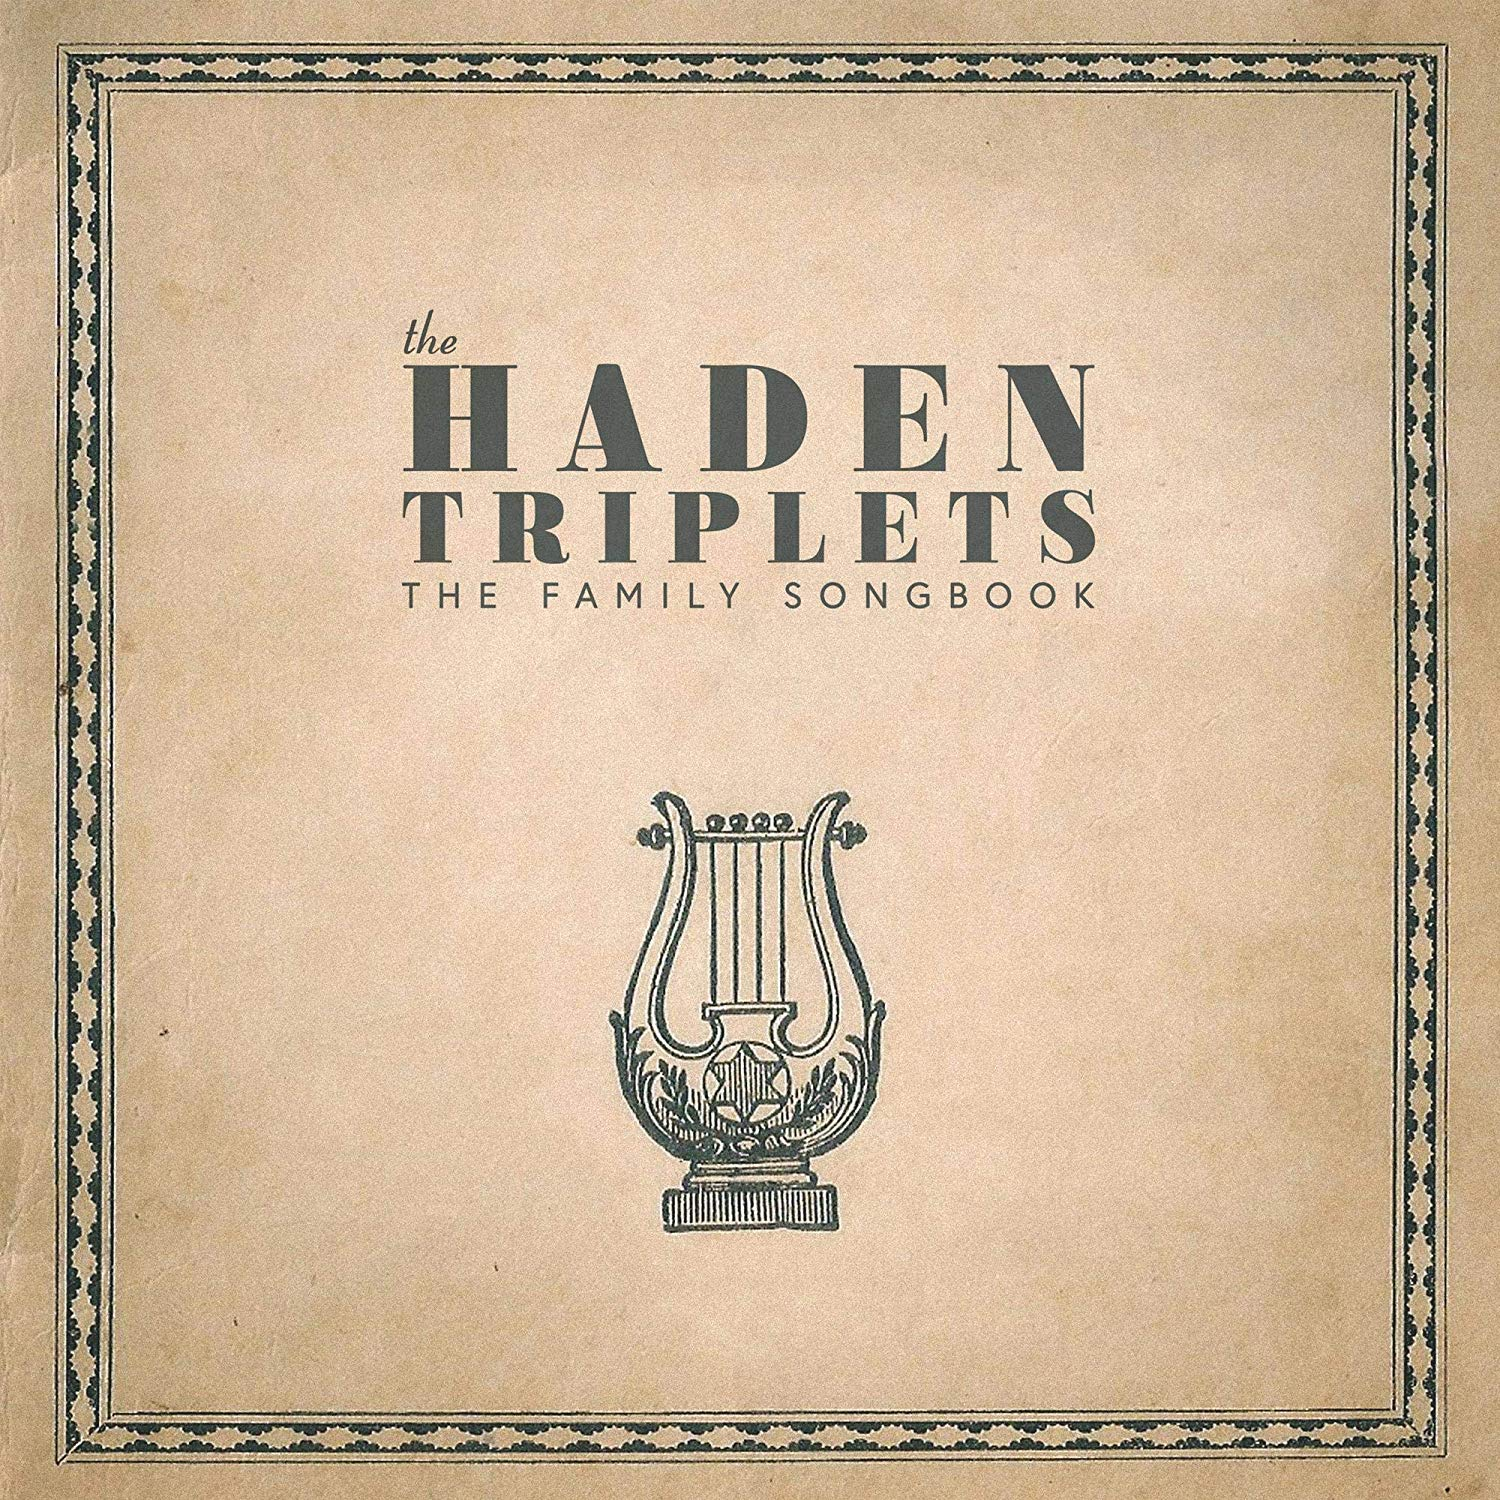 The Haden Triplets - Family Songbook [LP]